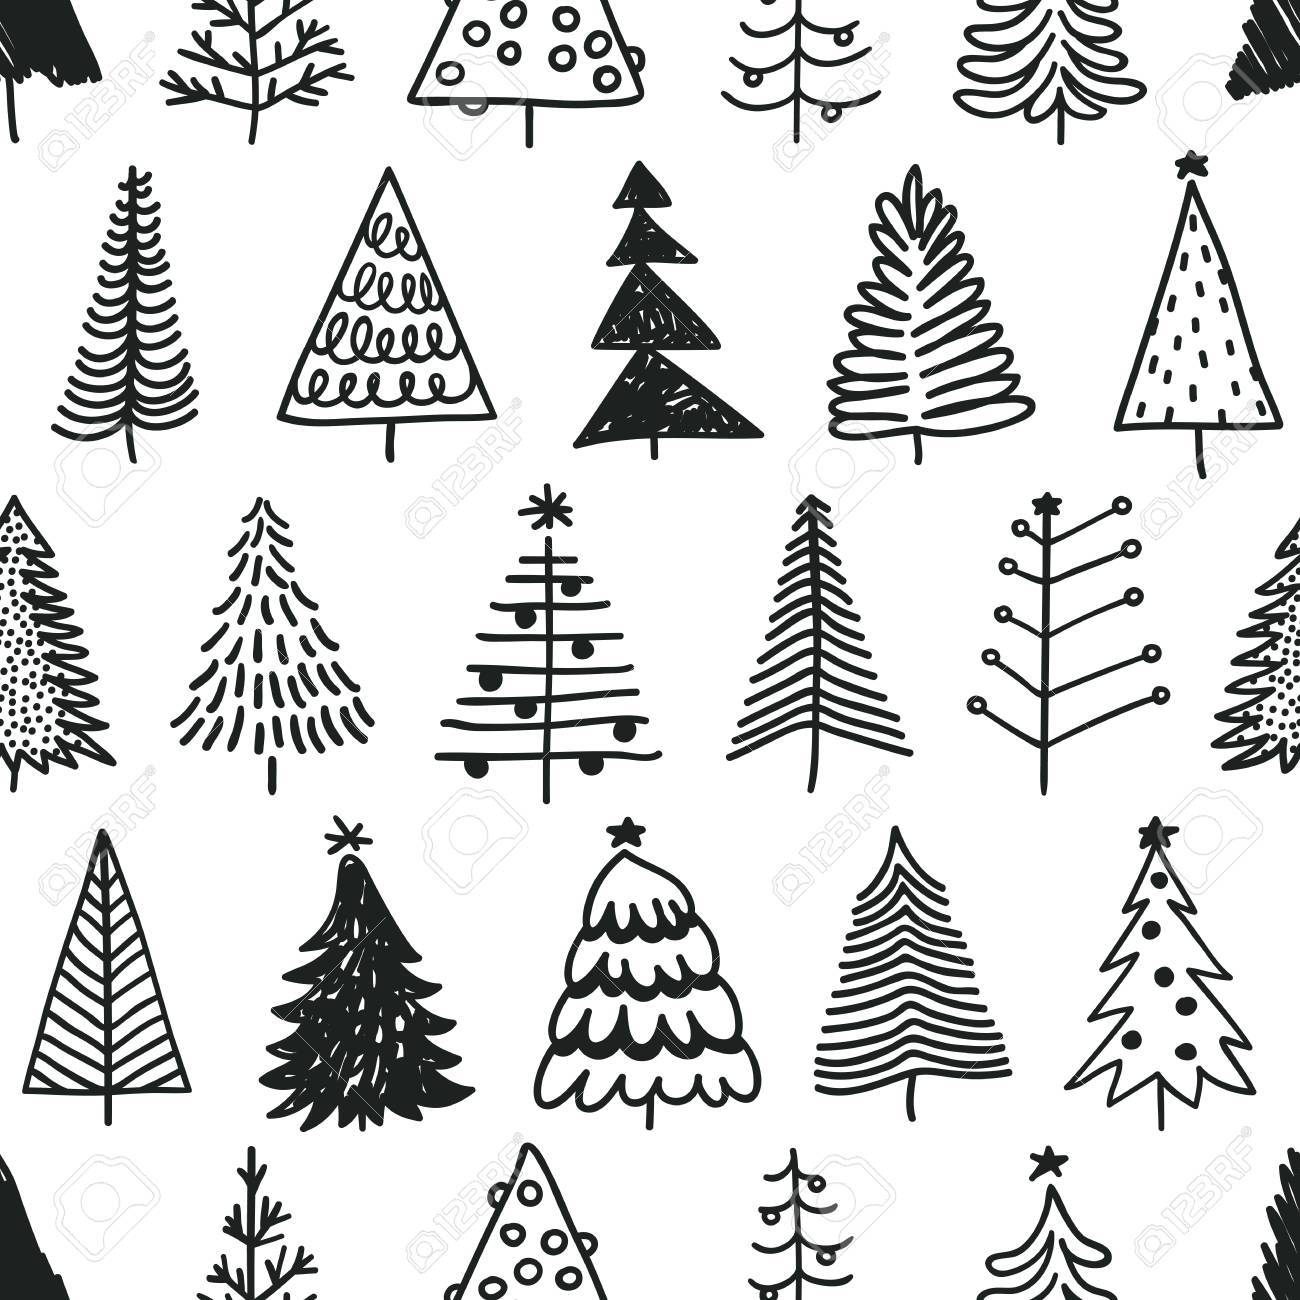 Christmas Tree Pattern.Seamless Pattern With Hand Drawn Christmas Tree Abstract Doodle